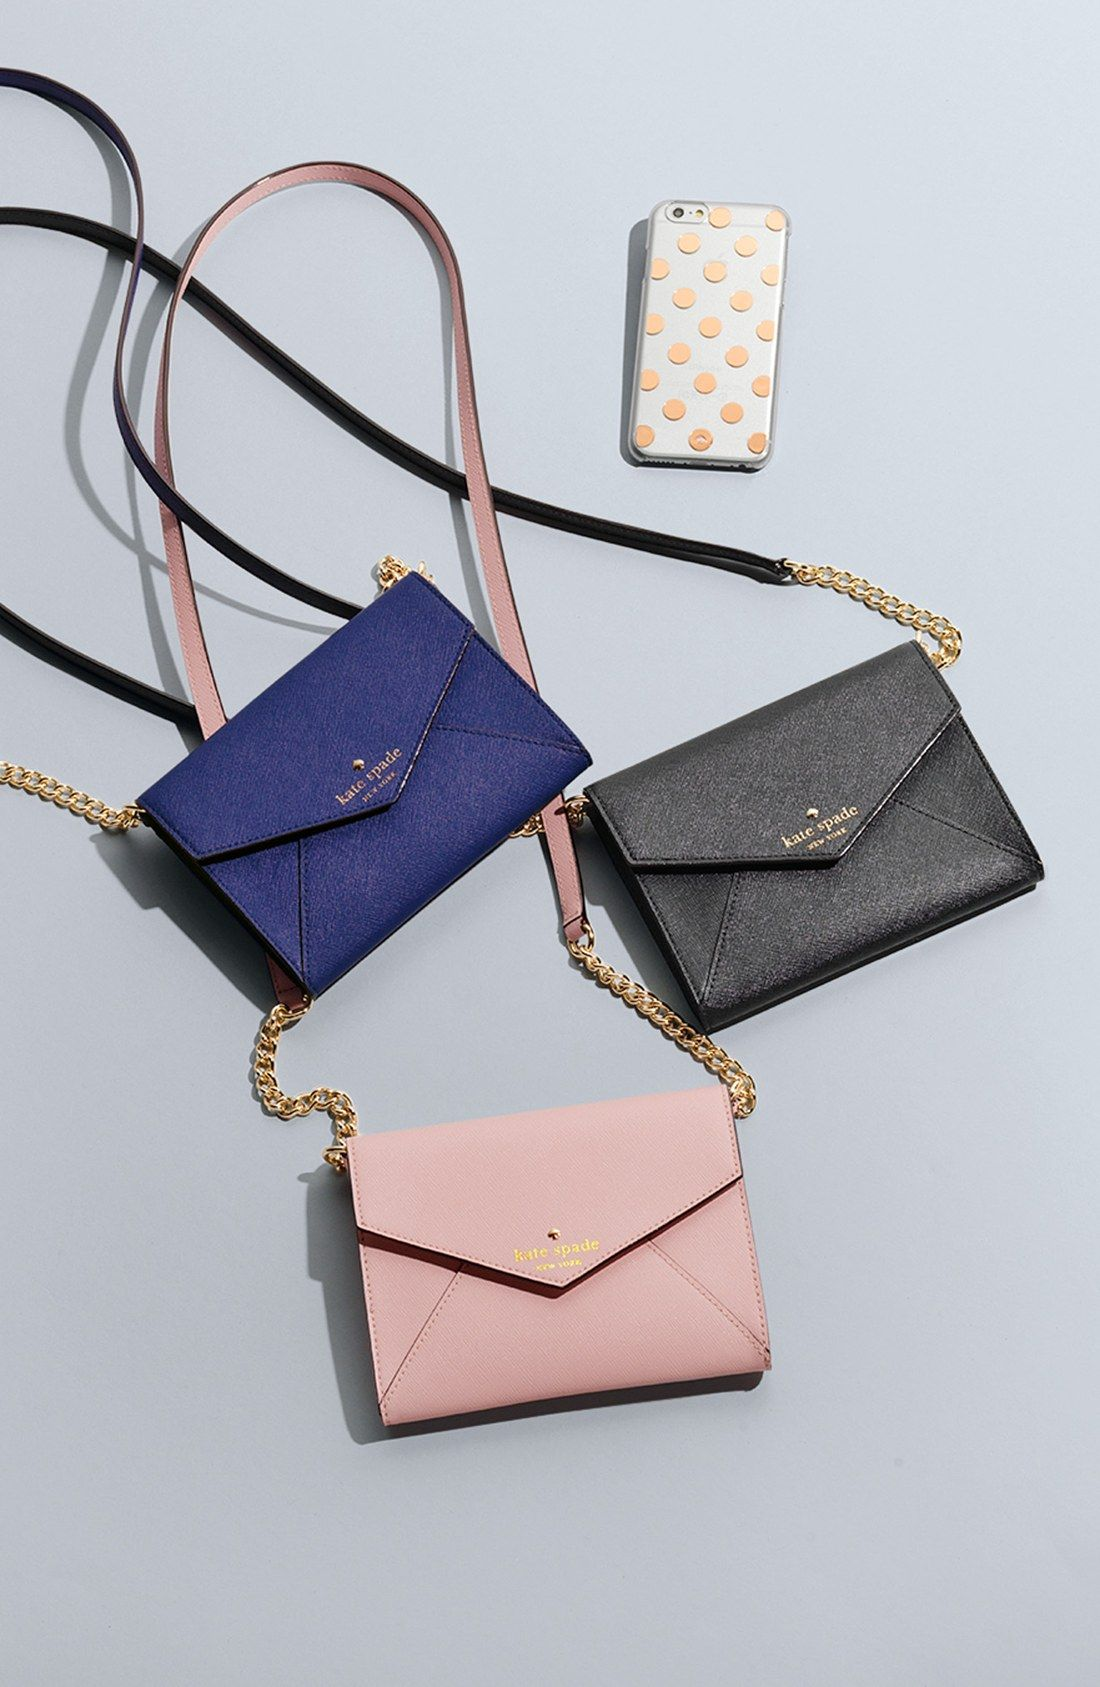 cd5e87cd0eaf These Kate Spade crossbody bags are très chic.